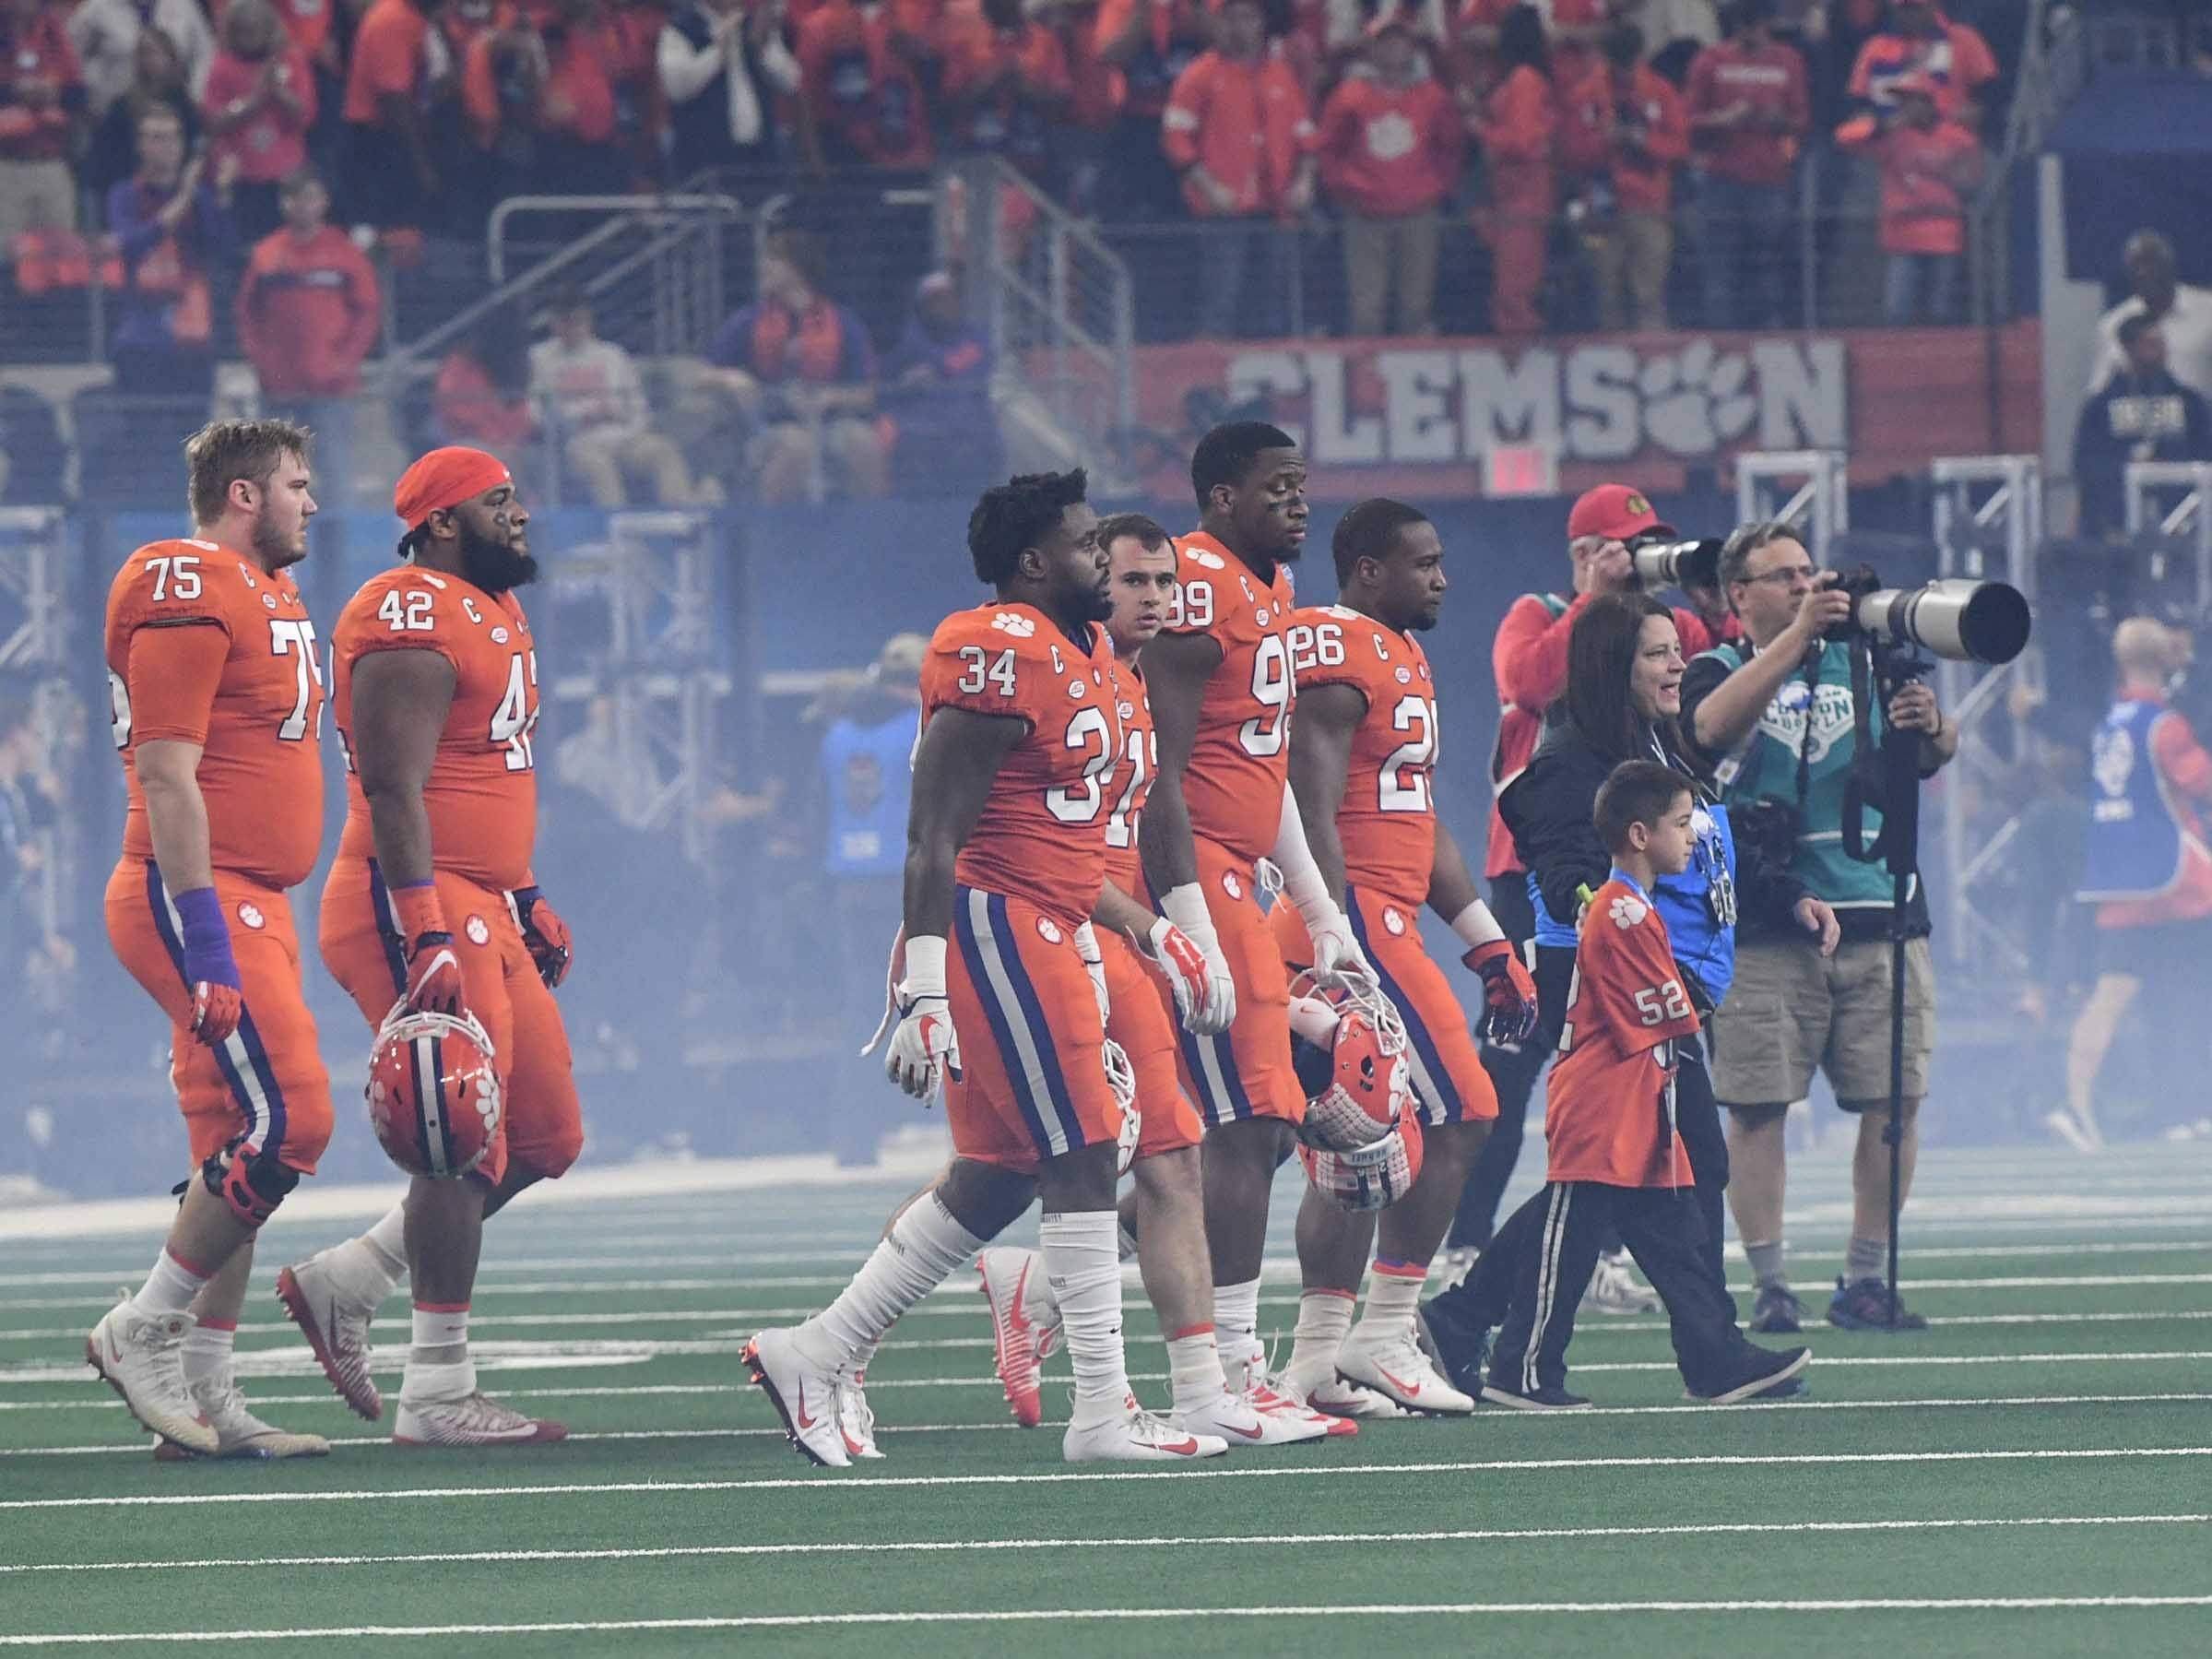 Clemson players walk out for the coin toss before the first quarter of the College Football Playoff Semifinal at the Goodyear Cotton Bowl Classic at AT&T Stadium in Arlington, Texas Saturday, December 29, 2018.